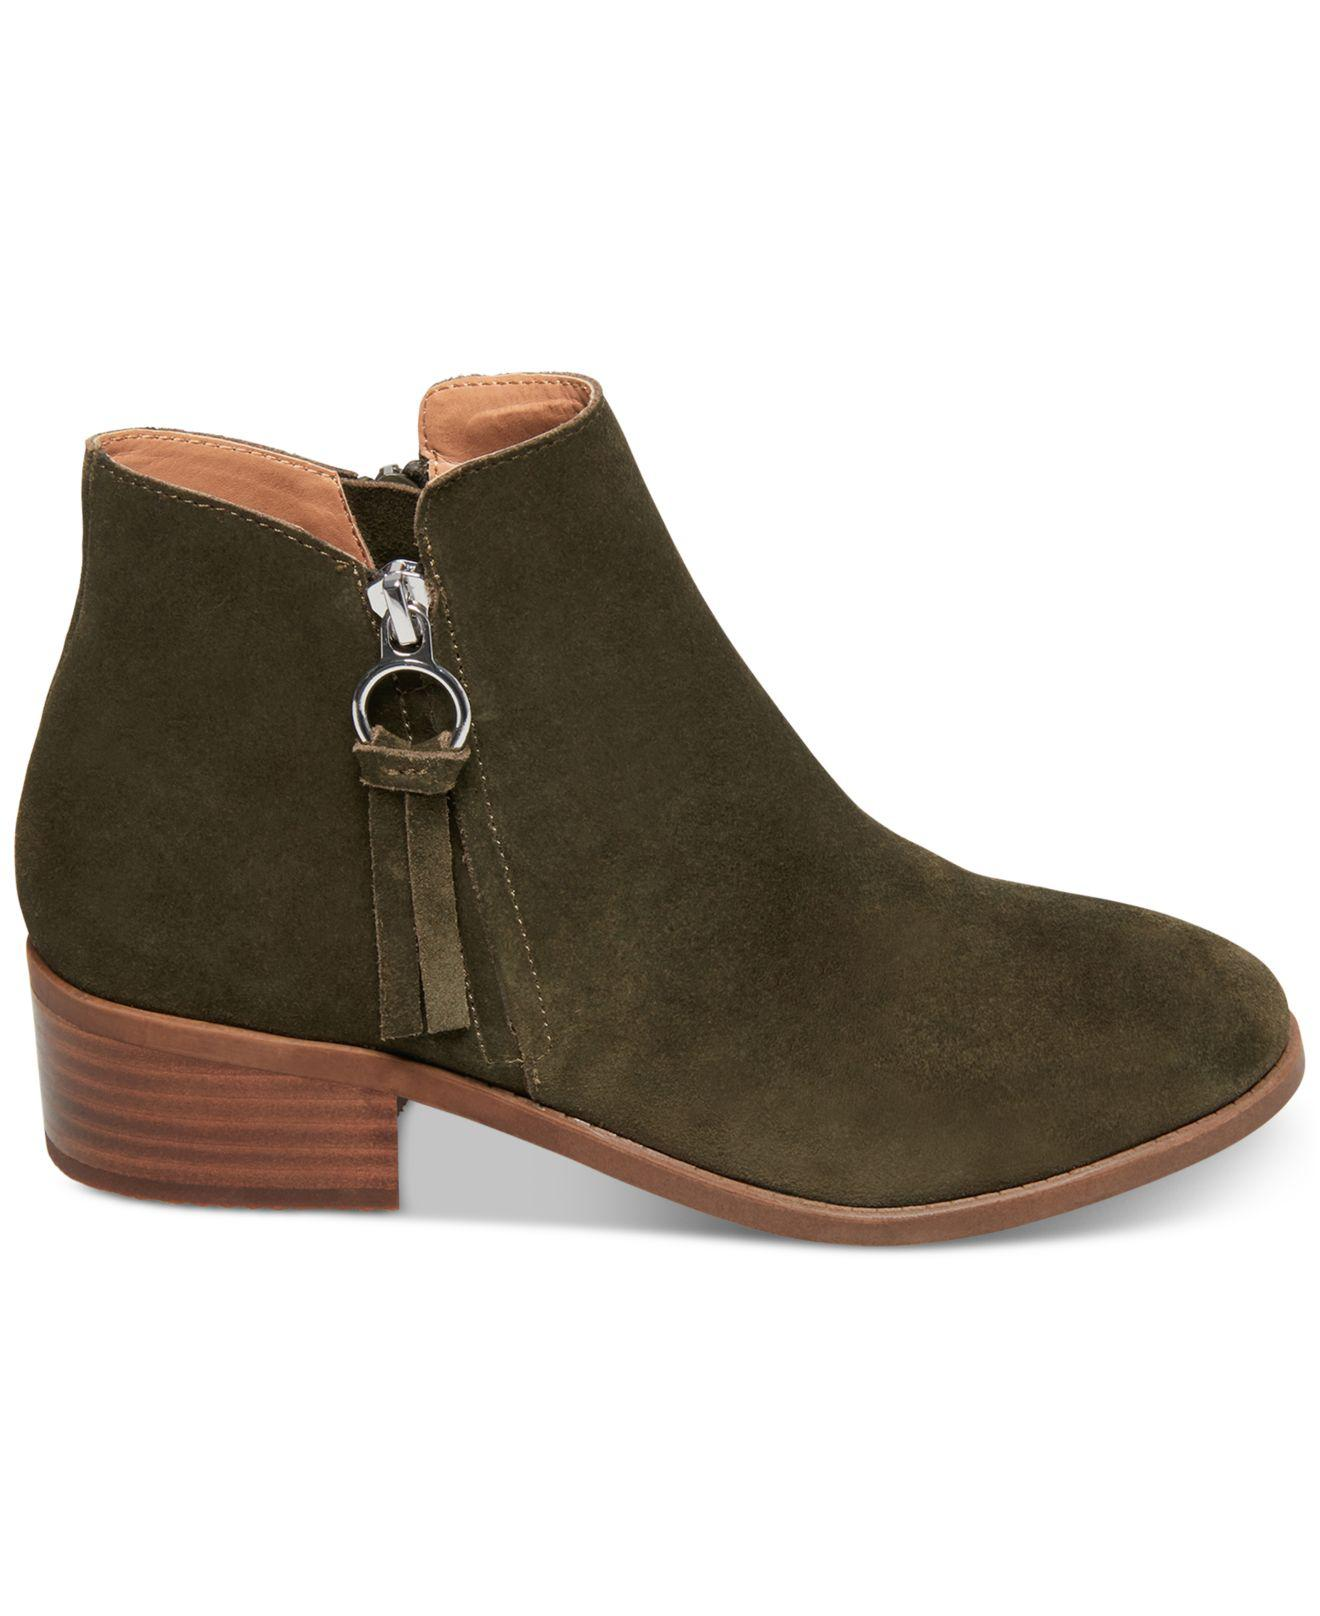 04ace7b8495 Lyst - Steve Madden Dacey Ankle Booties in Green